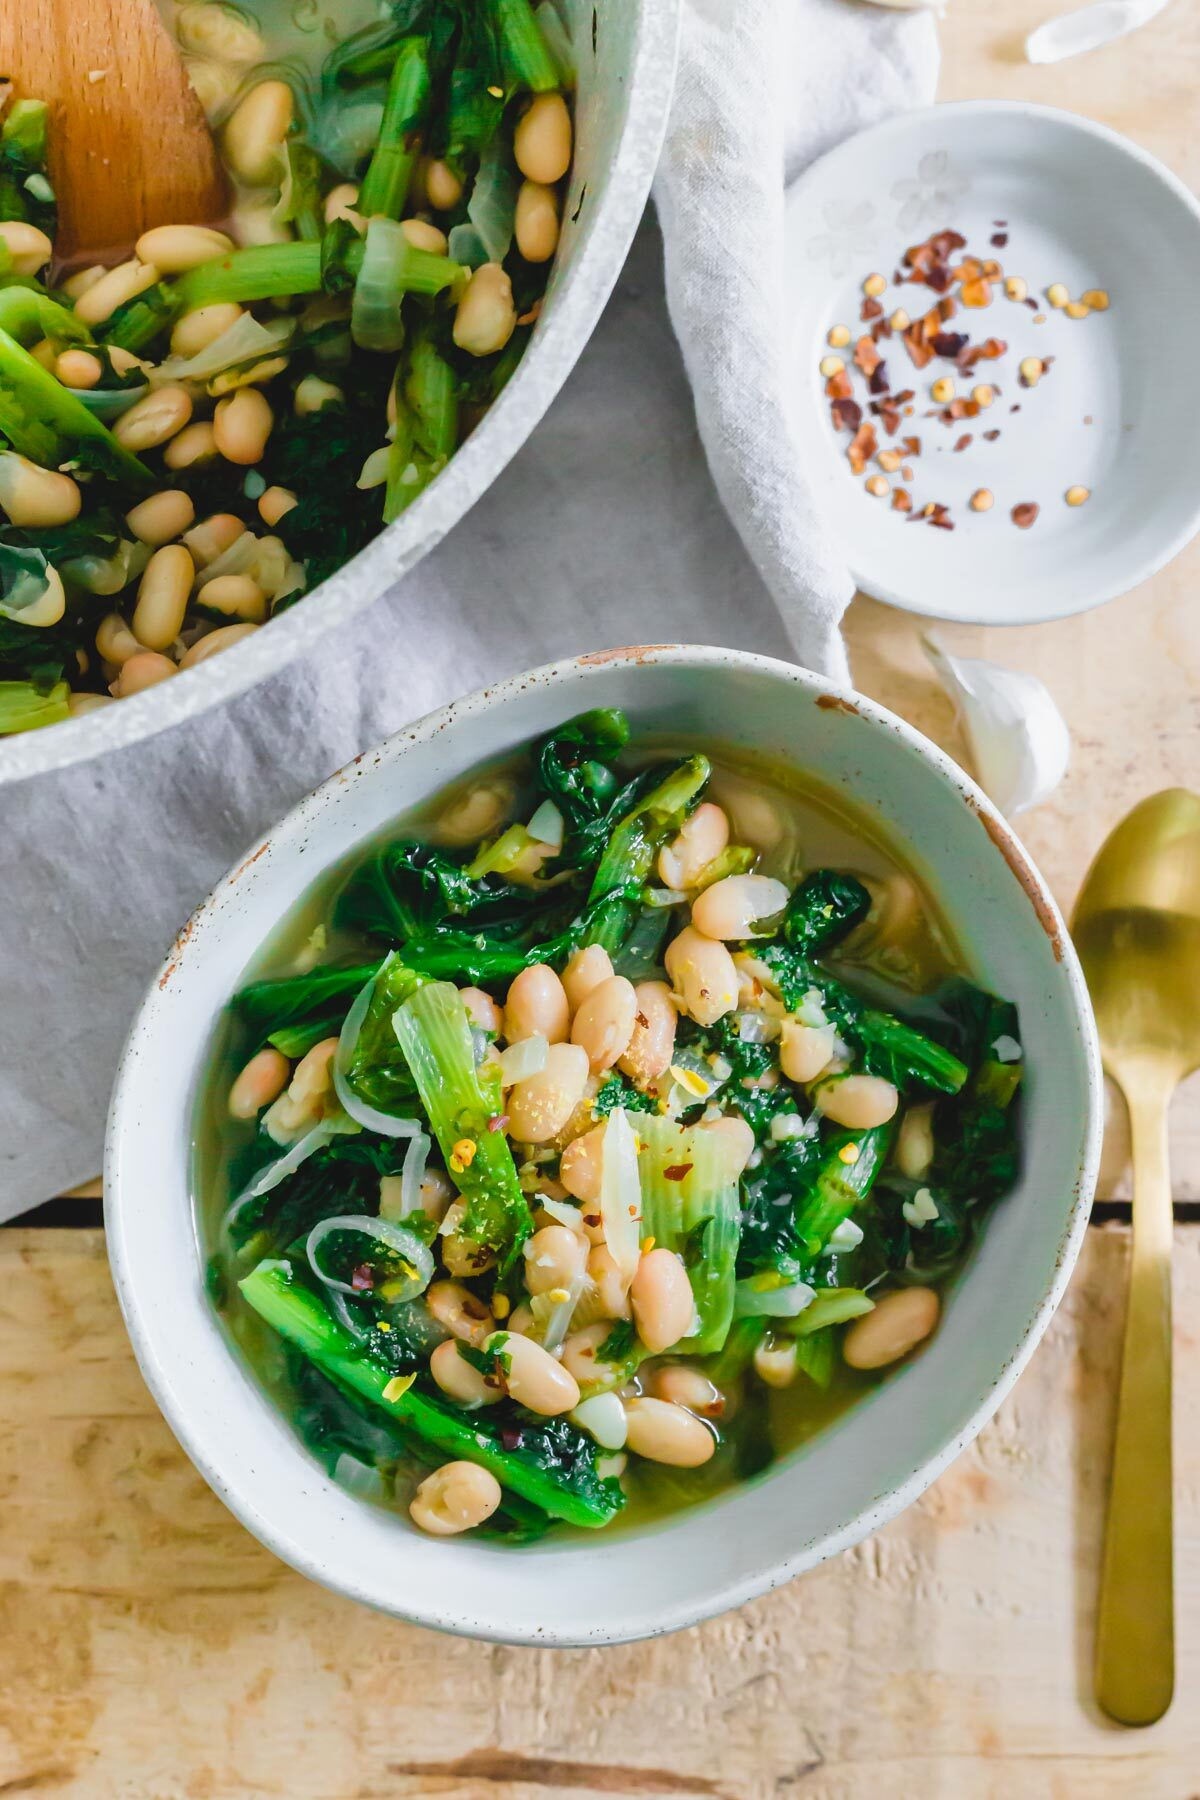 How to make escarole and beans with simple ingredients at home.